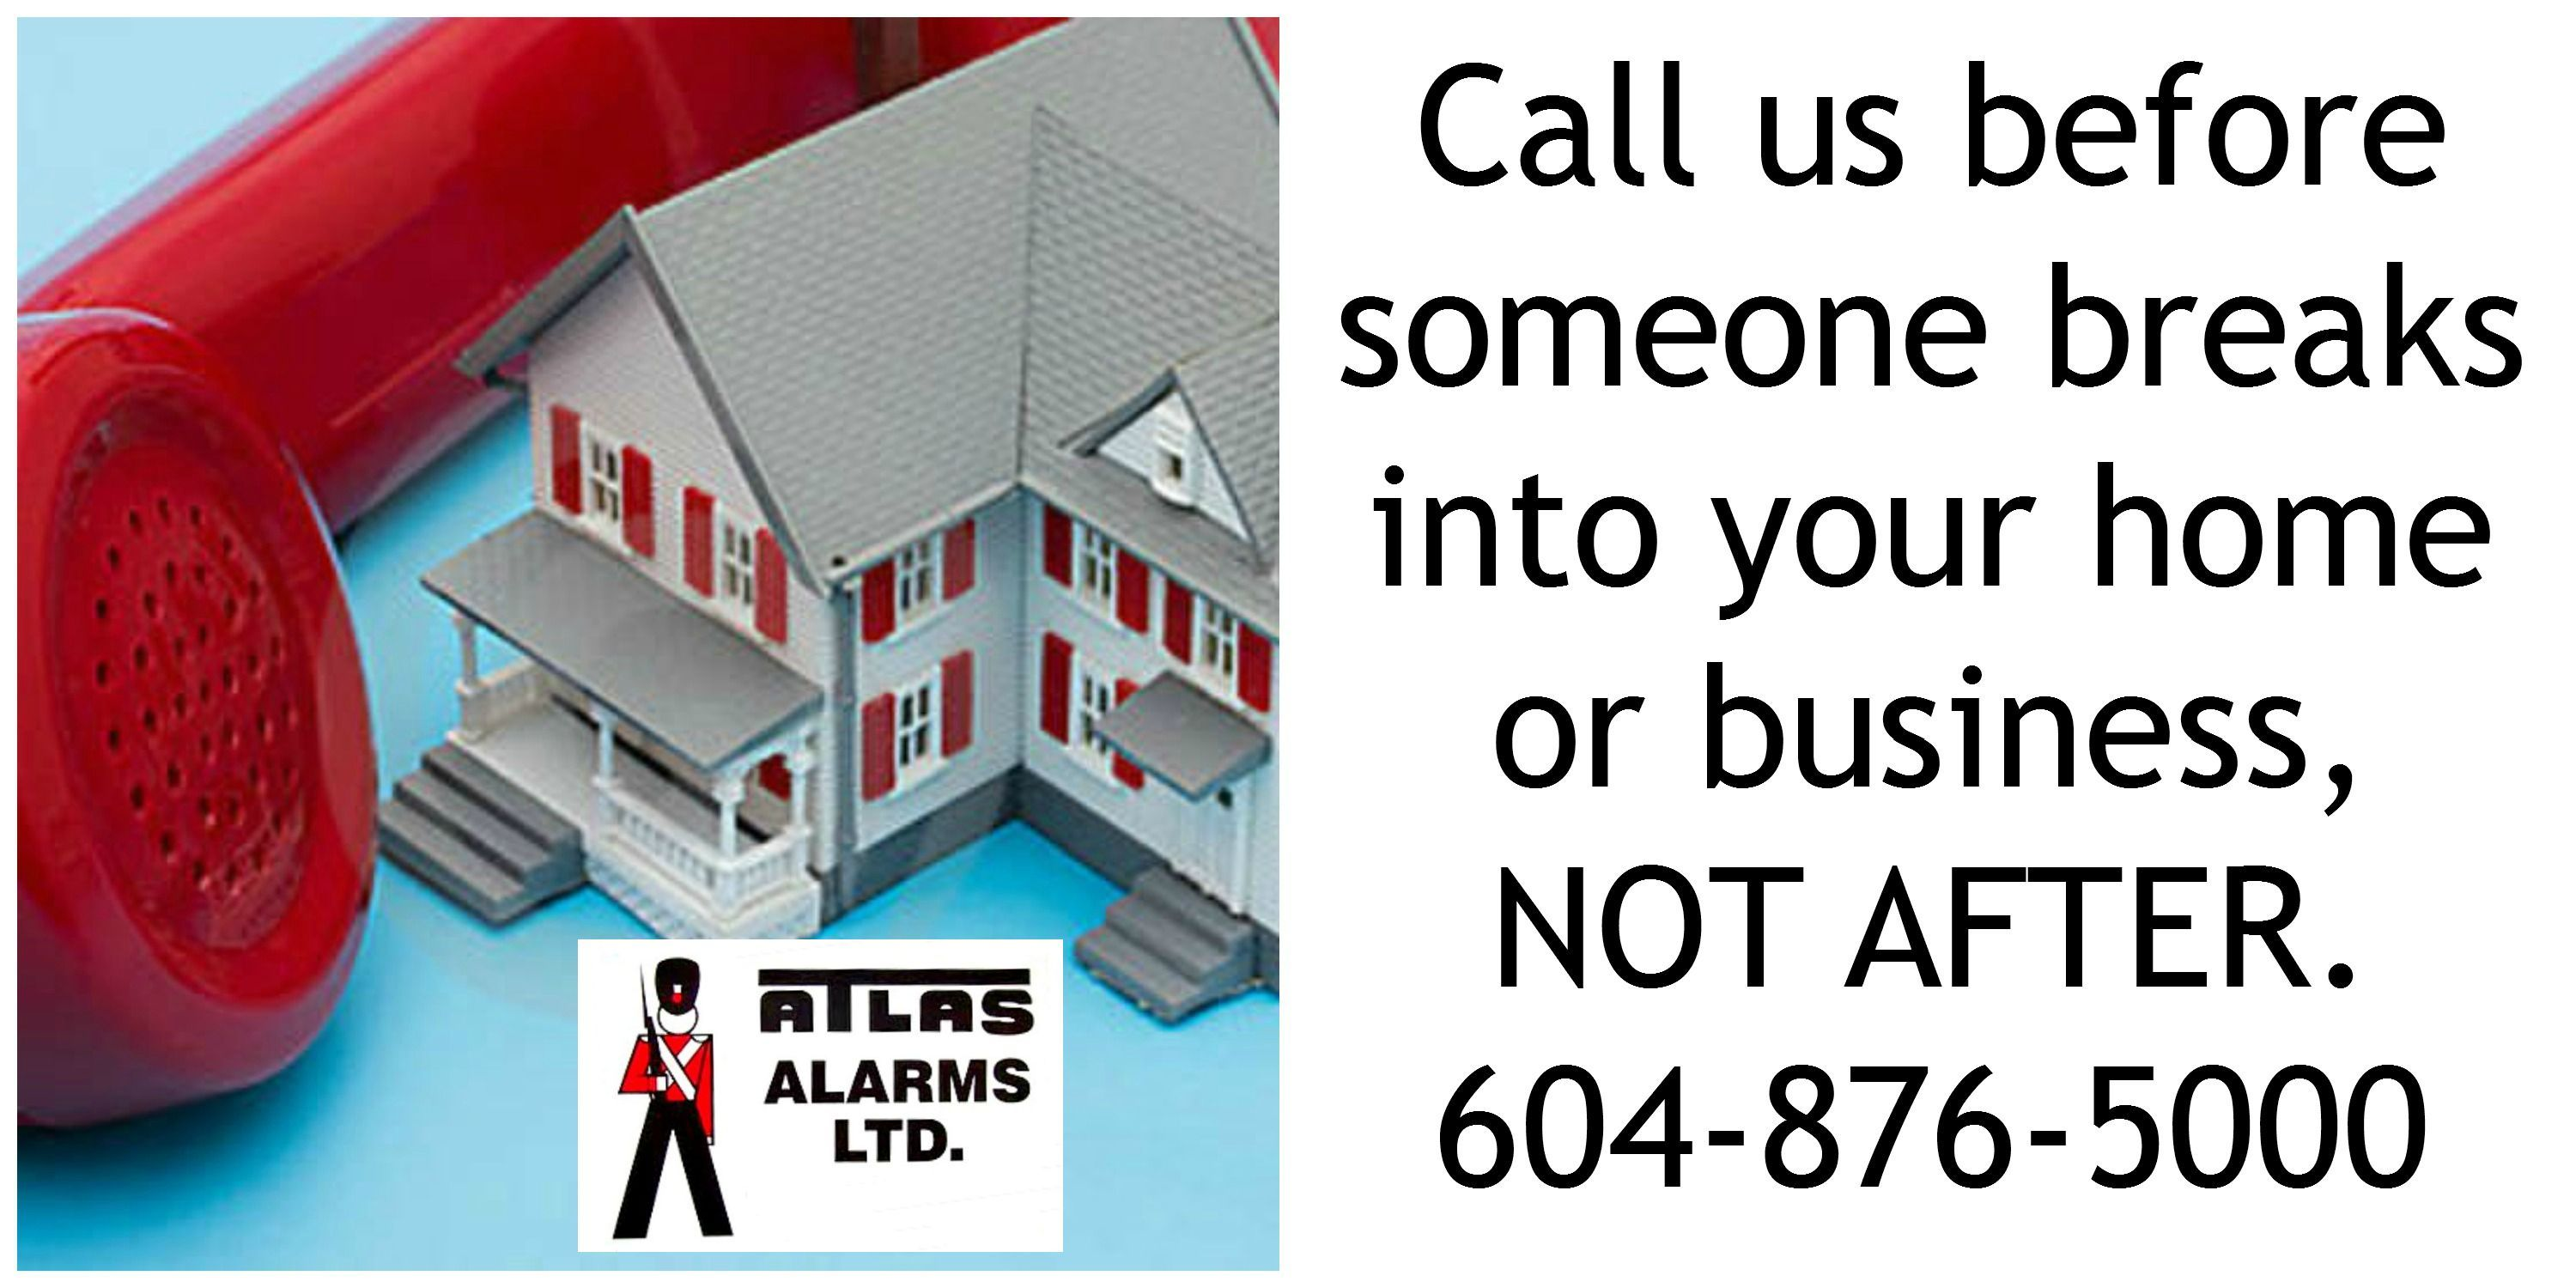 Call Atlas Alarms before a burglary. Security tips